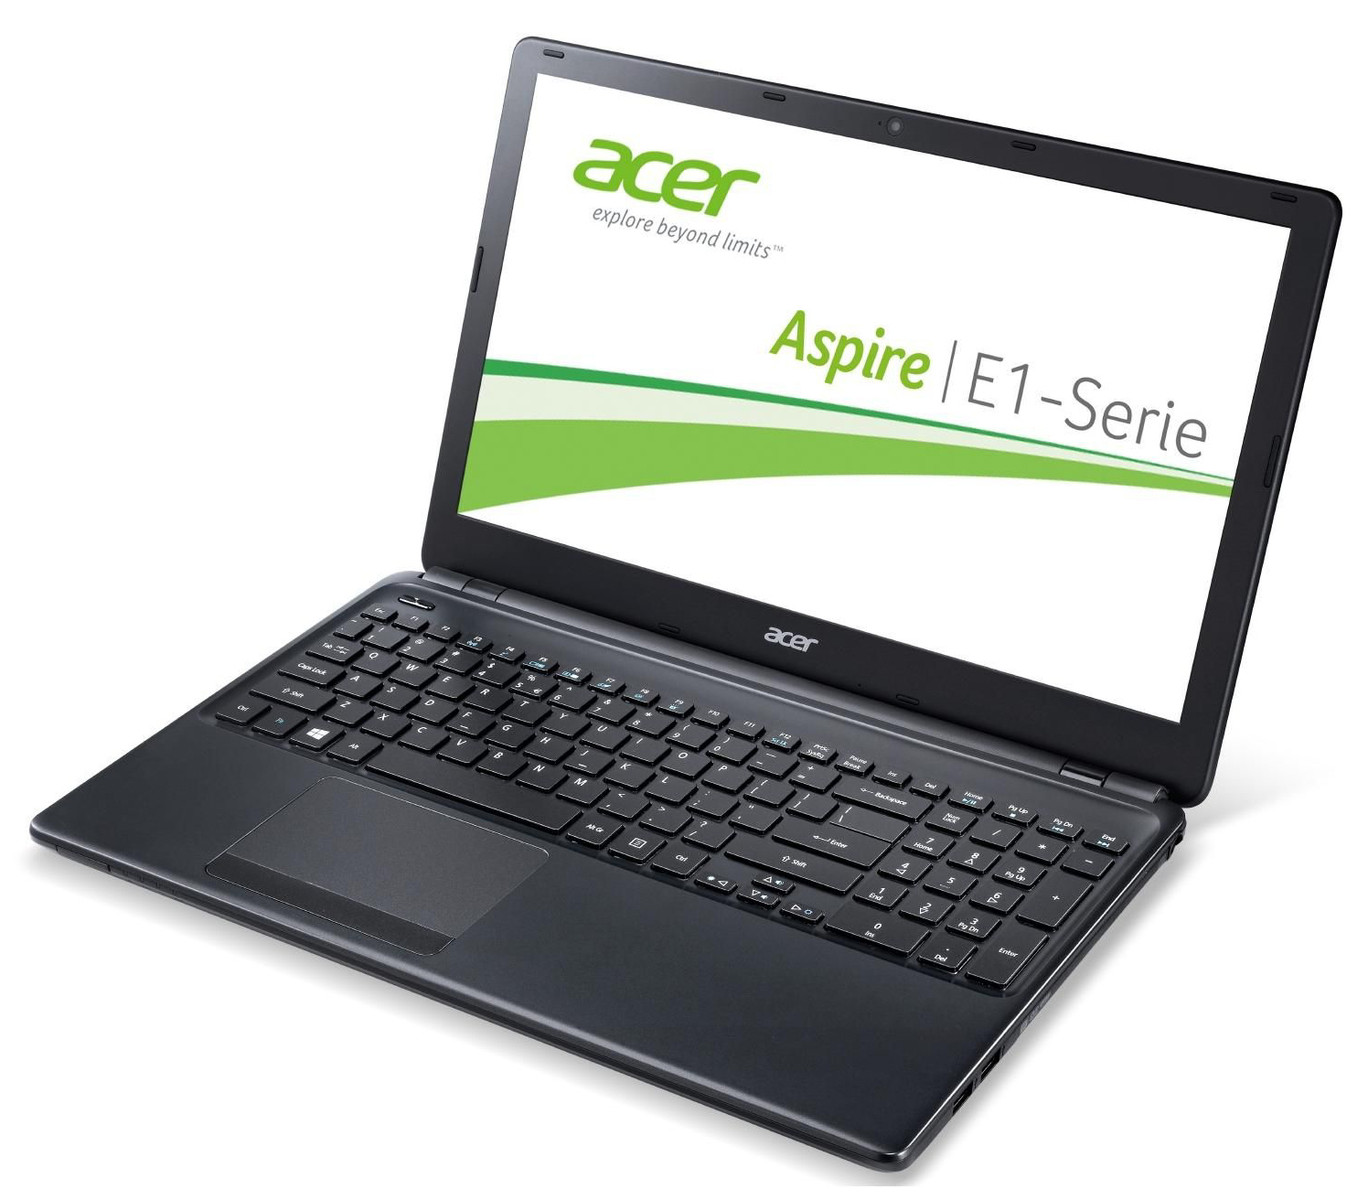 Acer Aspire E1-572 Drivers Update